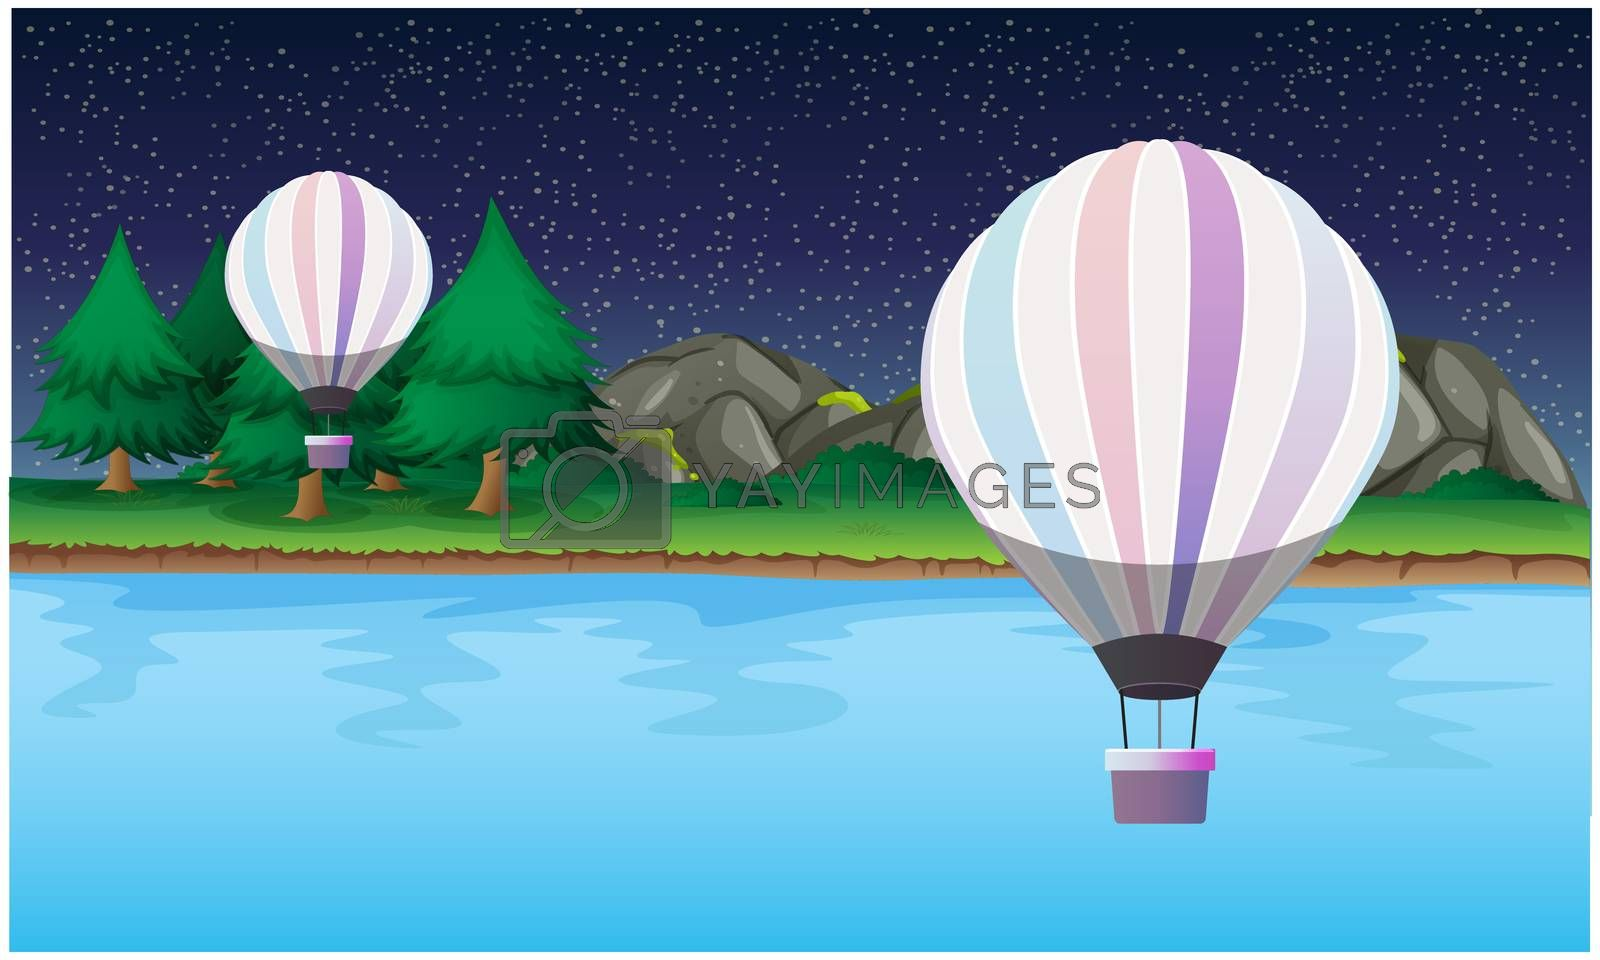 Royalty free image of hot air balloons are flying in the sky at night by aanavcreationsplus